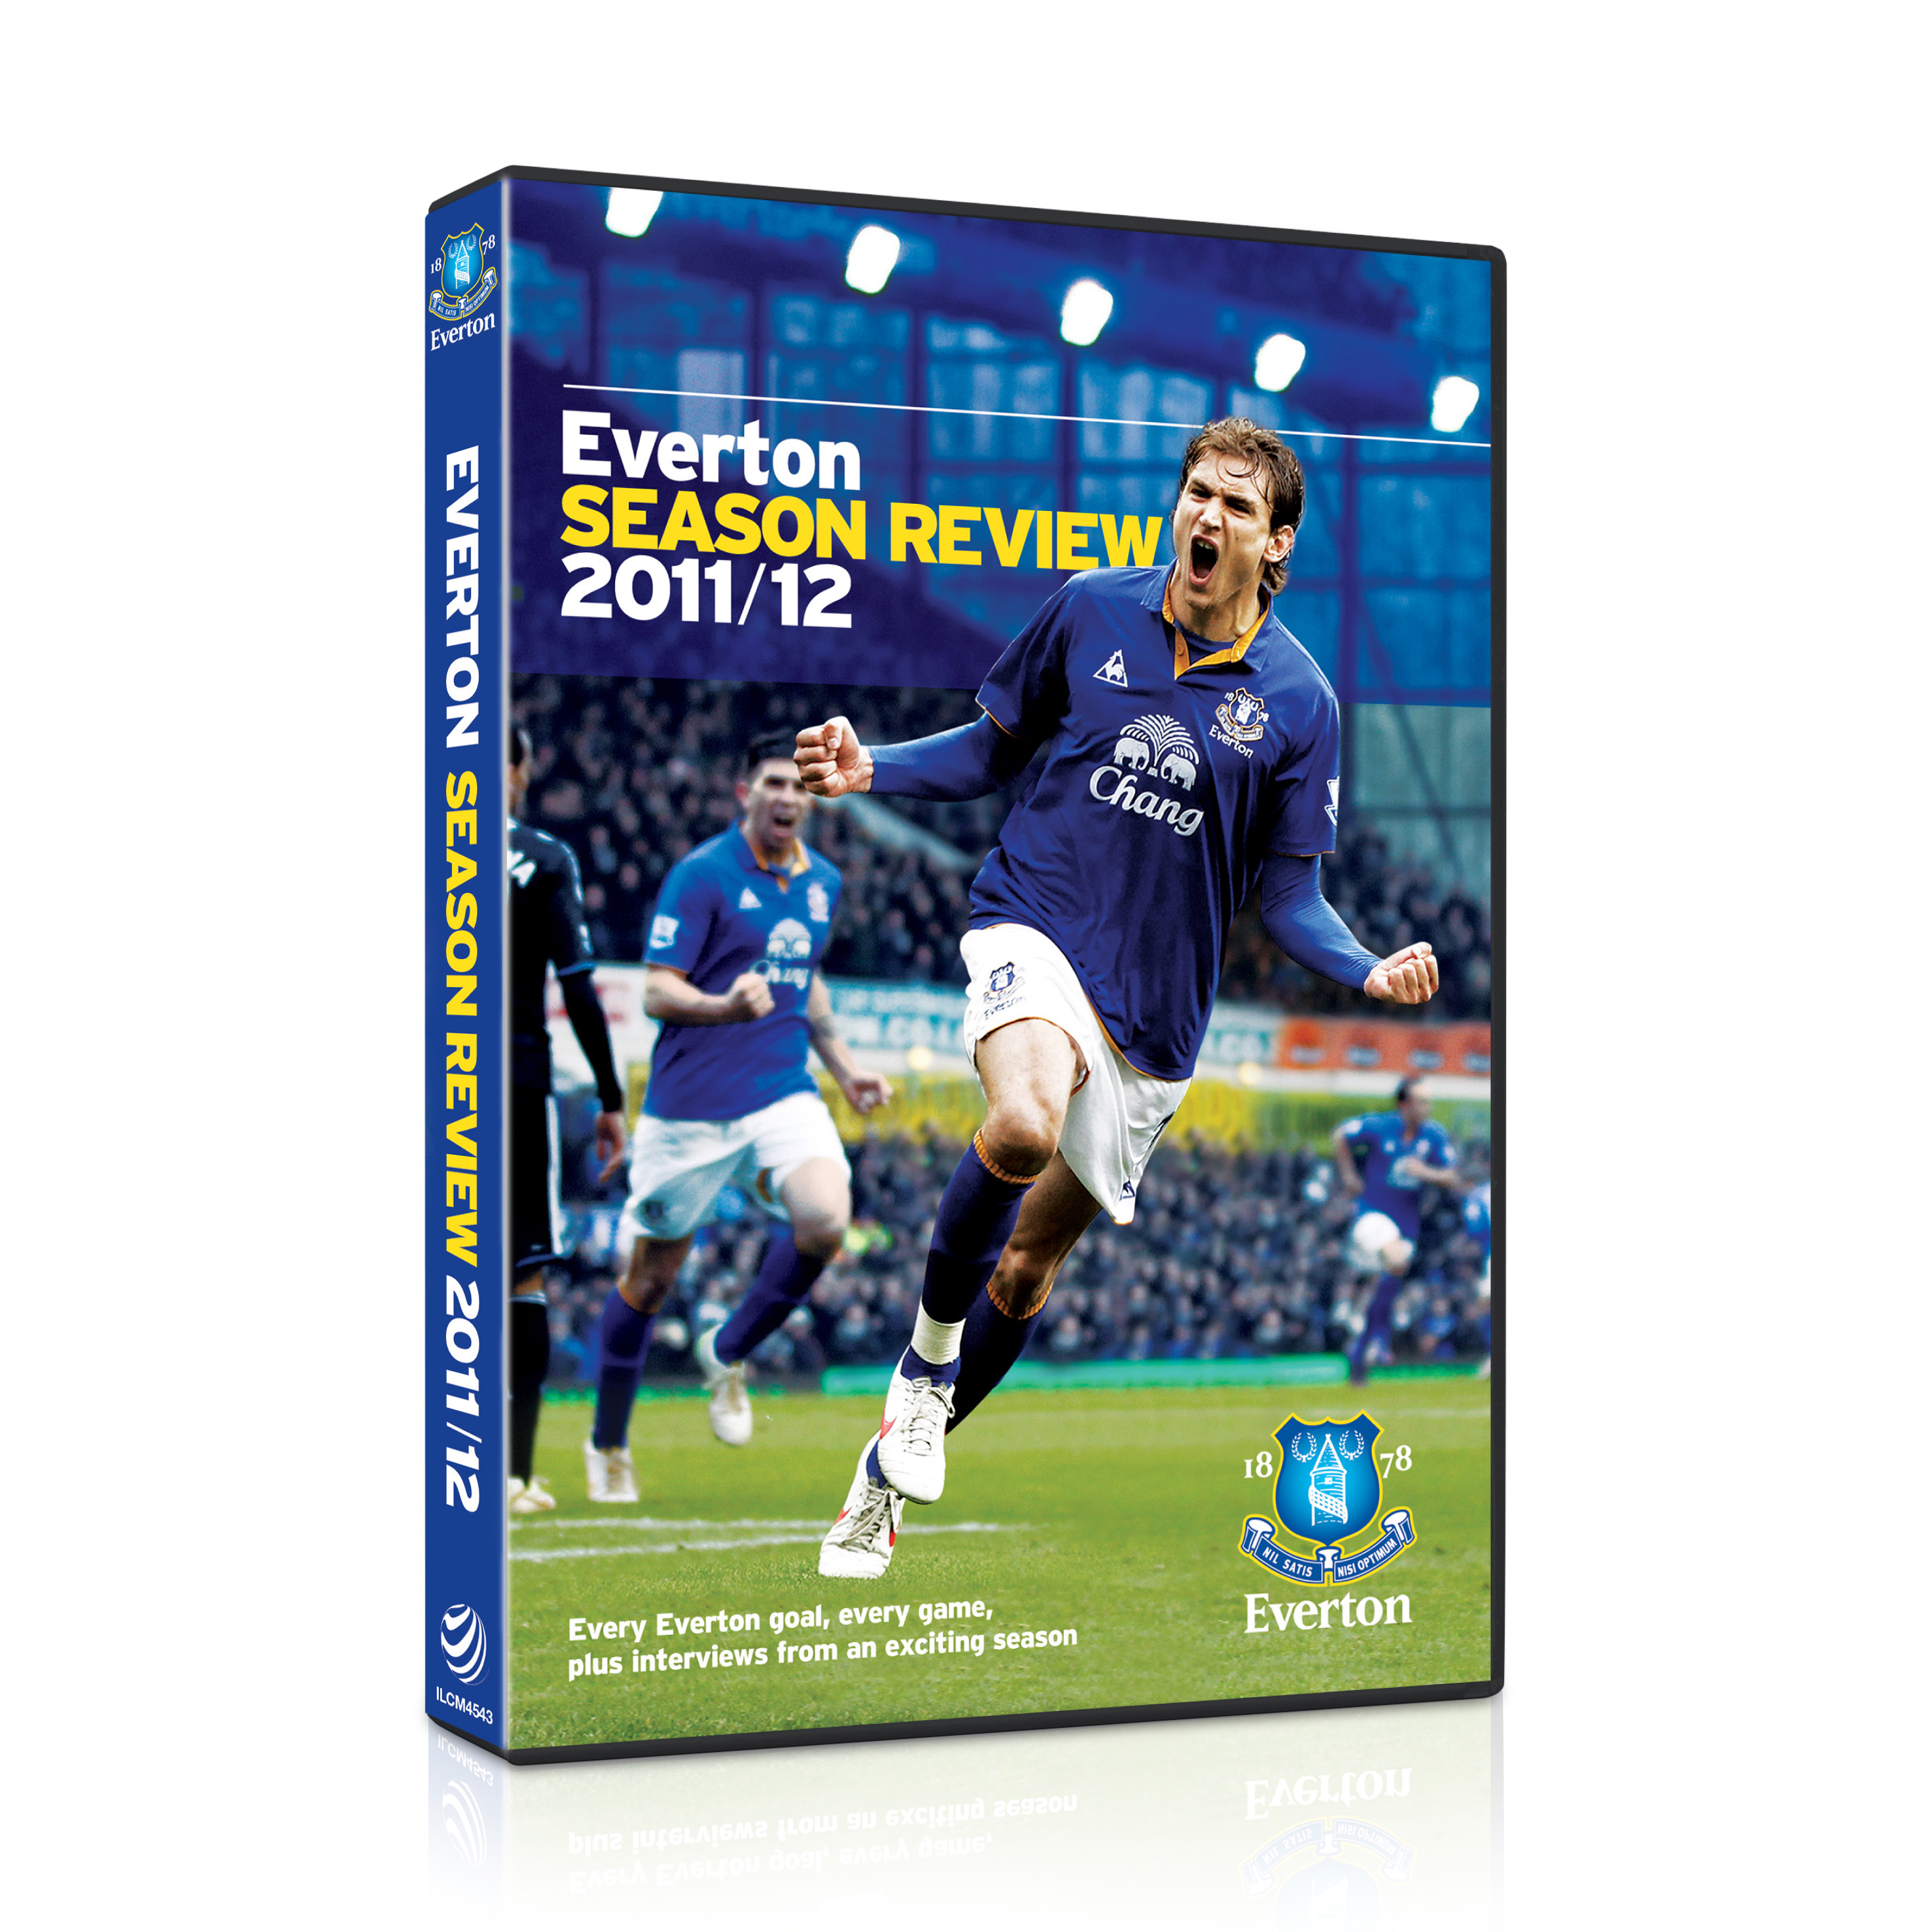 Everton Season Review 2011/12 DVD